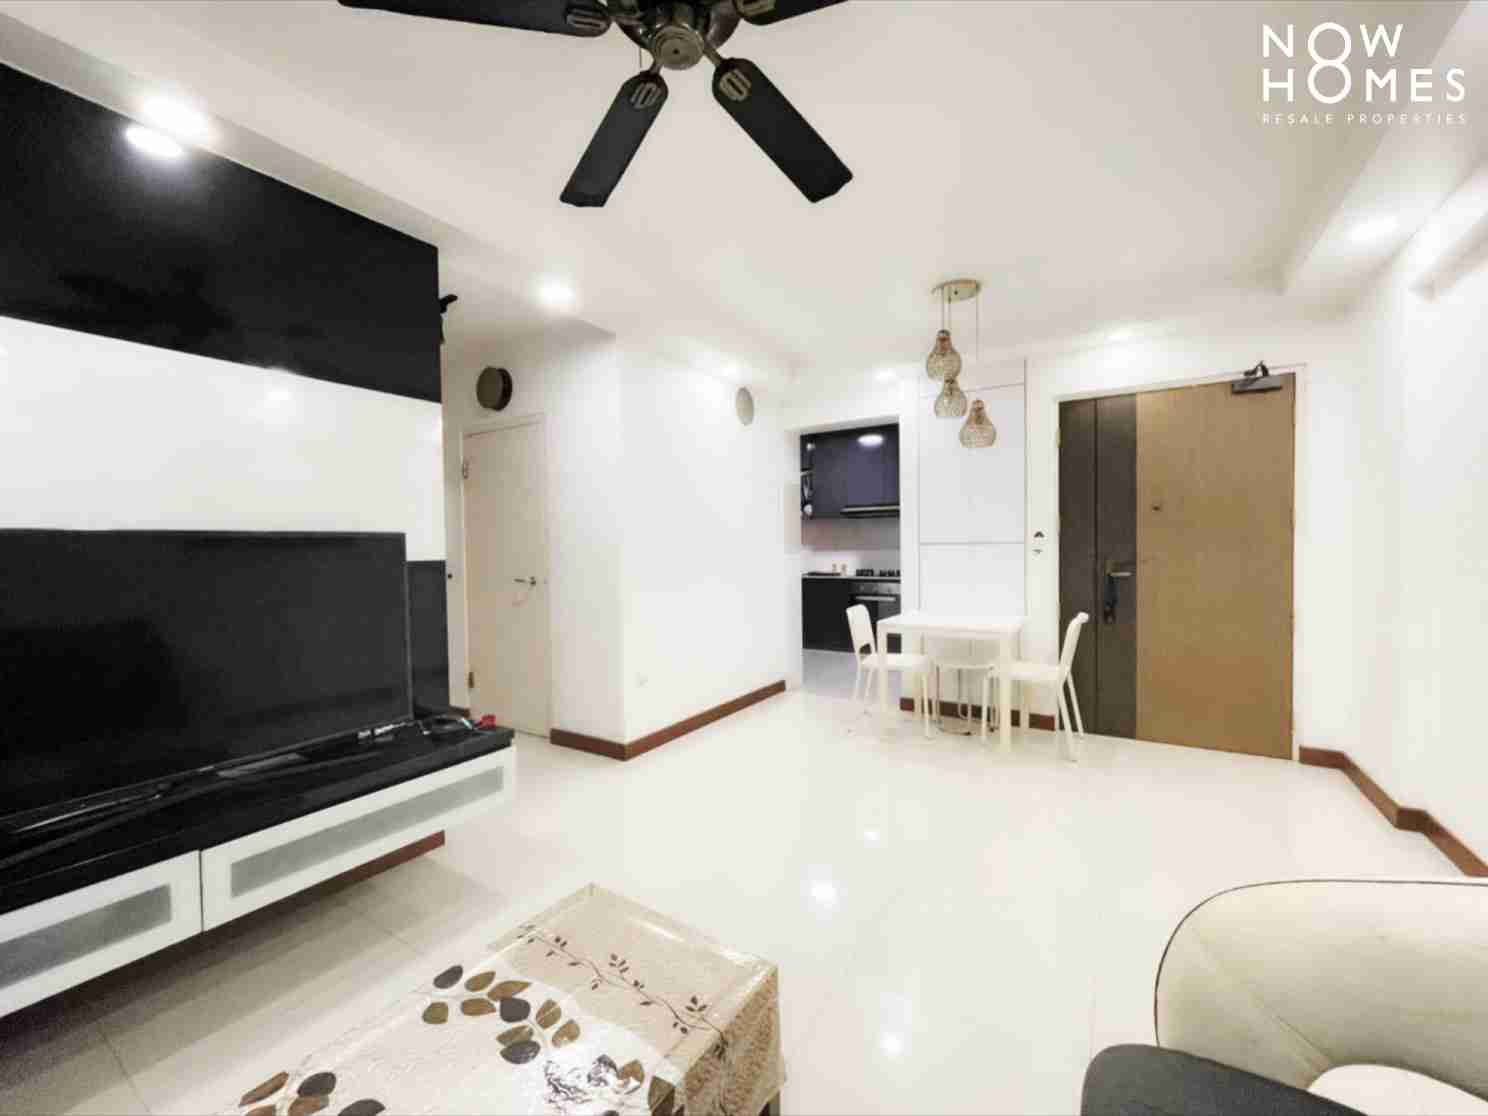 punggol resale property - 215a - White Living Room Kitchenview another pcs